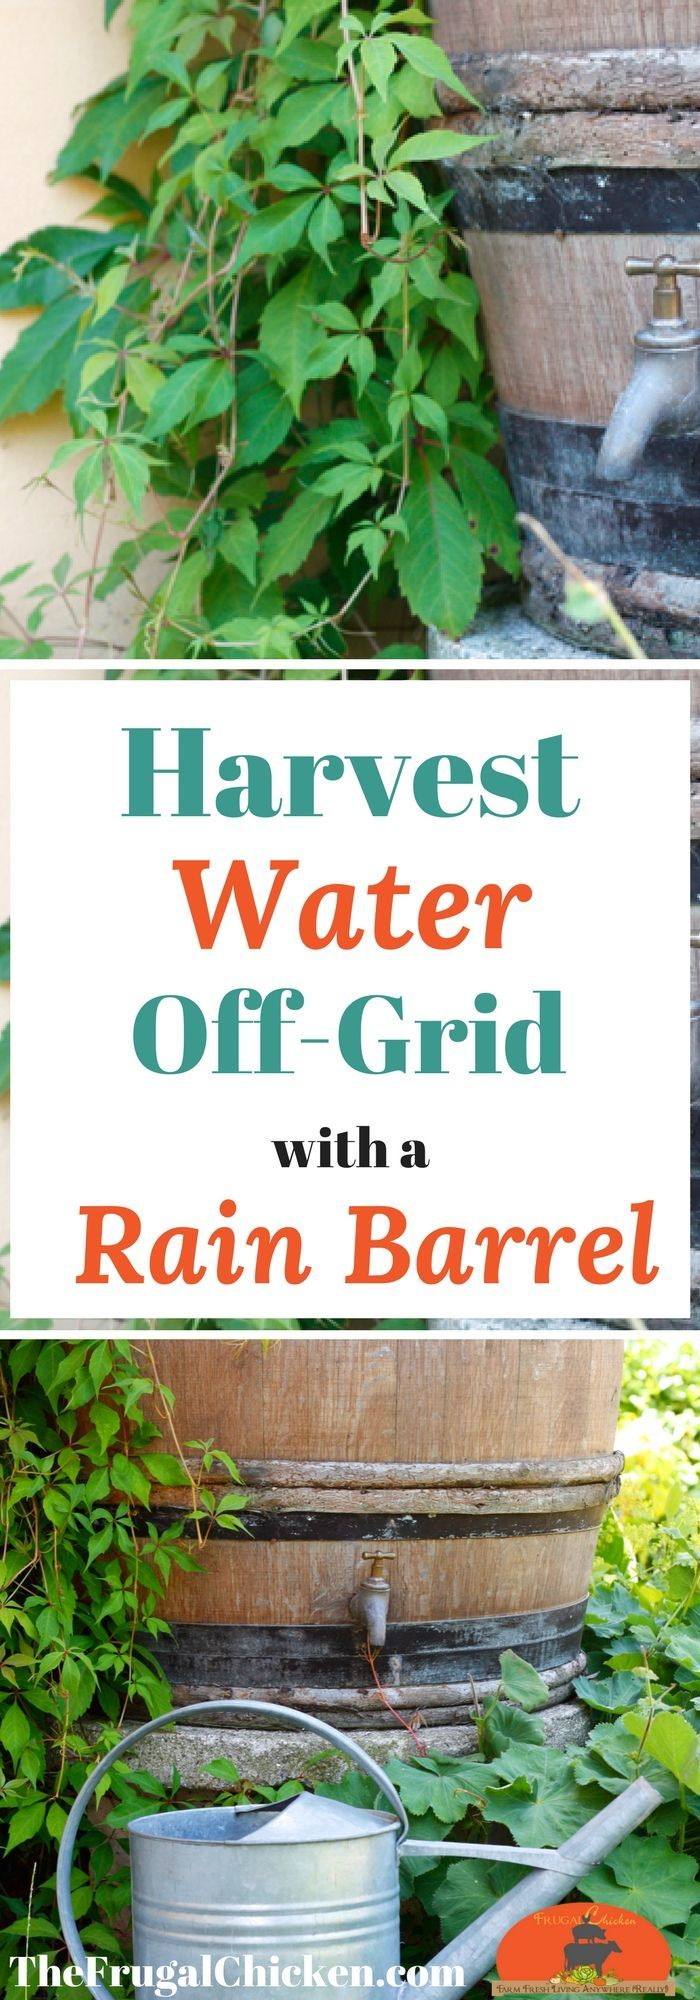 "If you want to harvest water off grid, you will need a rain barrel. And it's surprisingly easy - you can harvest approximately 62"" of water for every 1/10th of an inch of rain! Here's how to select and install a rain barrel for an off-grid water supply!"